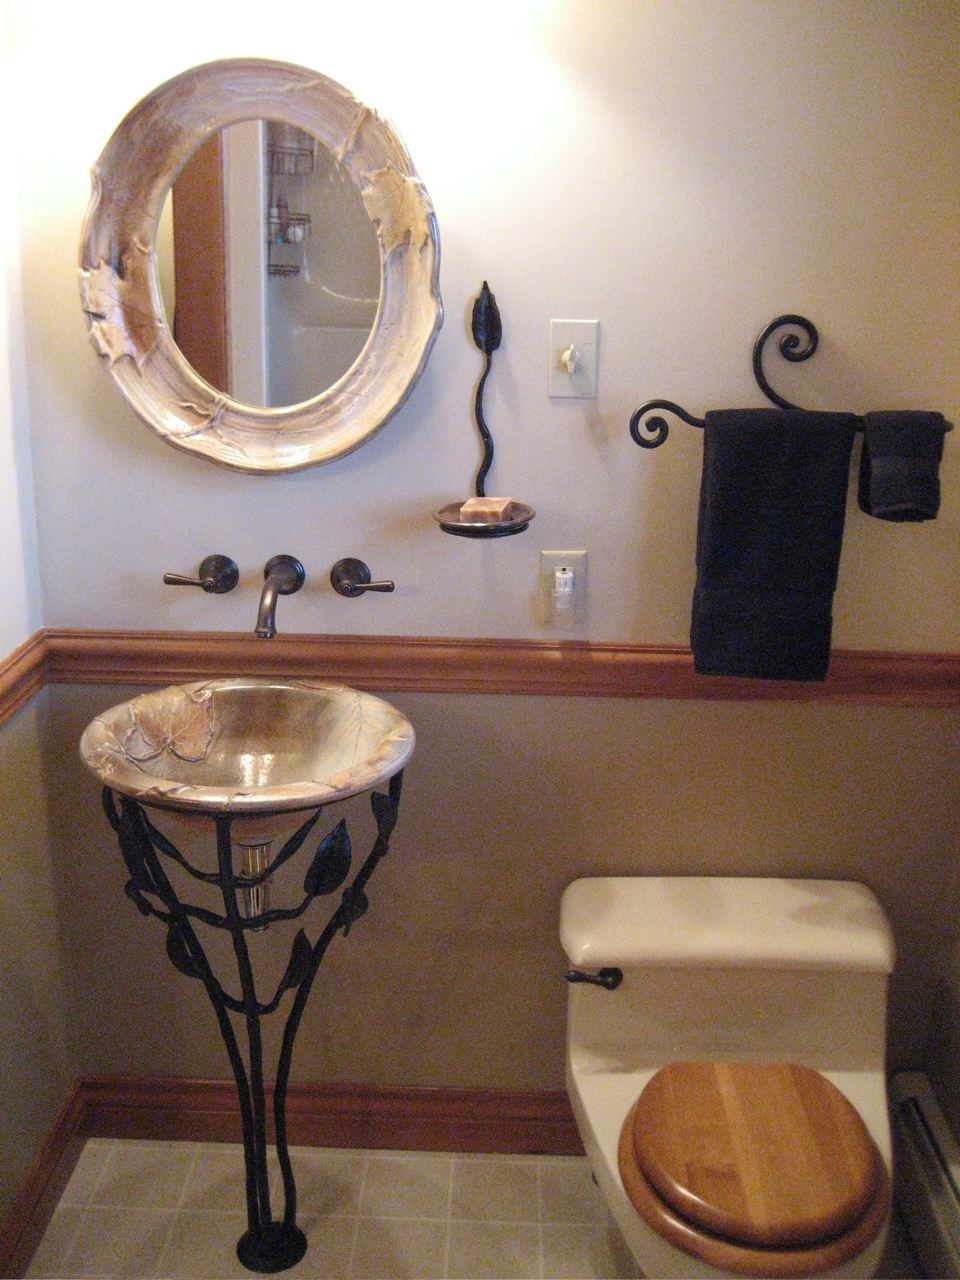 pedestal sink and accessories